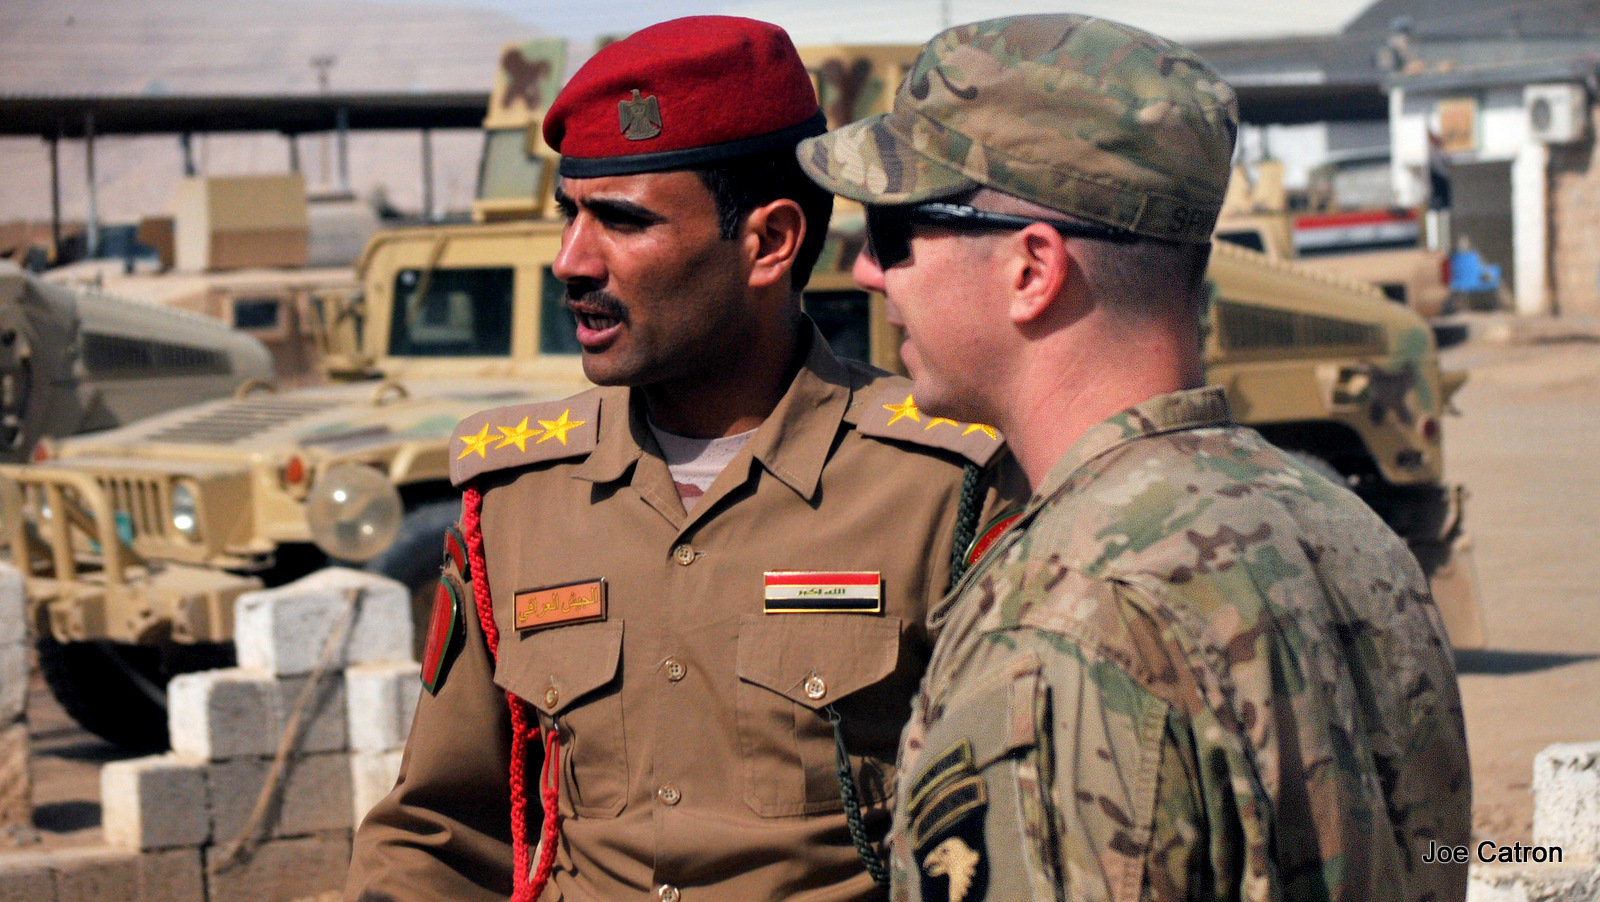 In this Sept. 6, 2016 photo released by the U.S. Army, U.S. Army Capt. Gerrard Spinney, right, commander of Company C, 1st Squadron, 75th Cavalry Regiment, Task Force Strike, speaks to his Iraqi army counterpart from the Ninawa Operations Command prior to a security meeting at Camp Swift, Iraq.